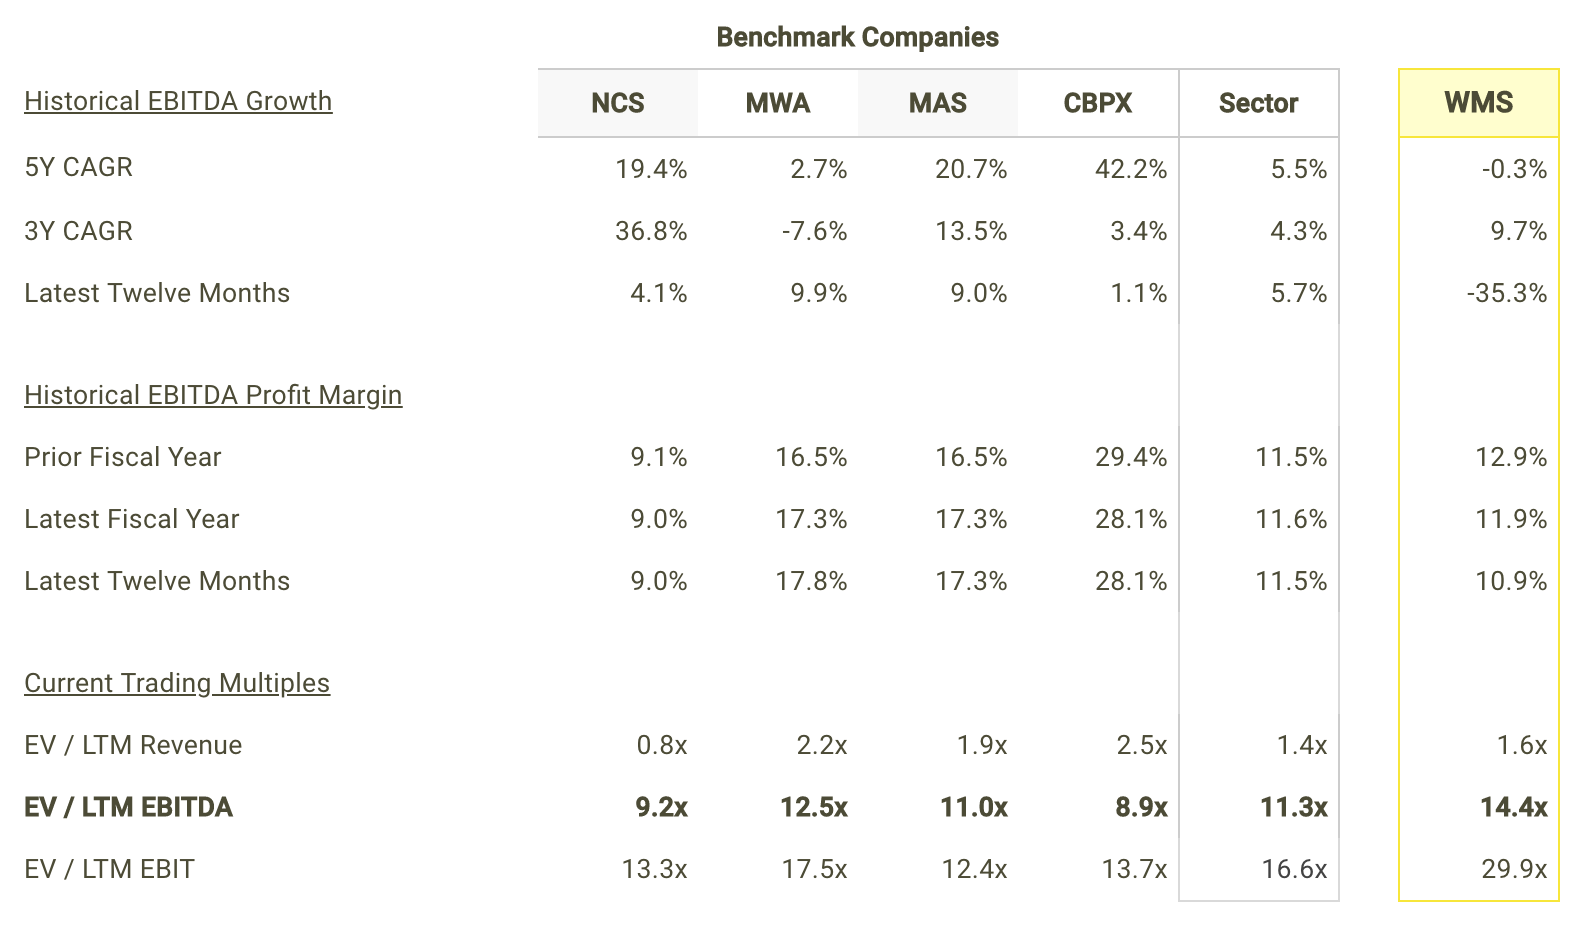 WMS EBITDA Growth and Margins vs Peers Table